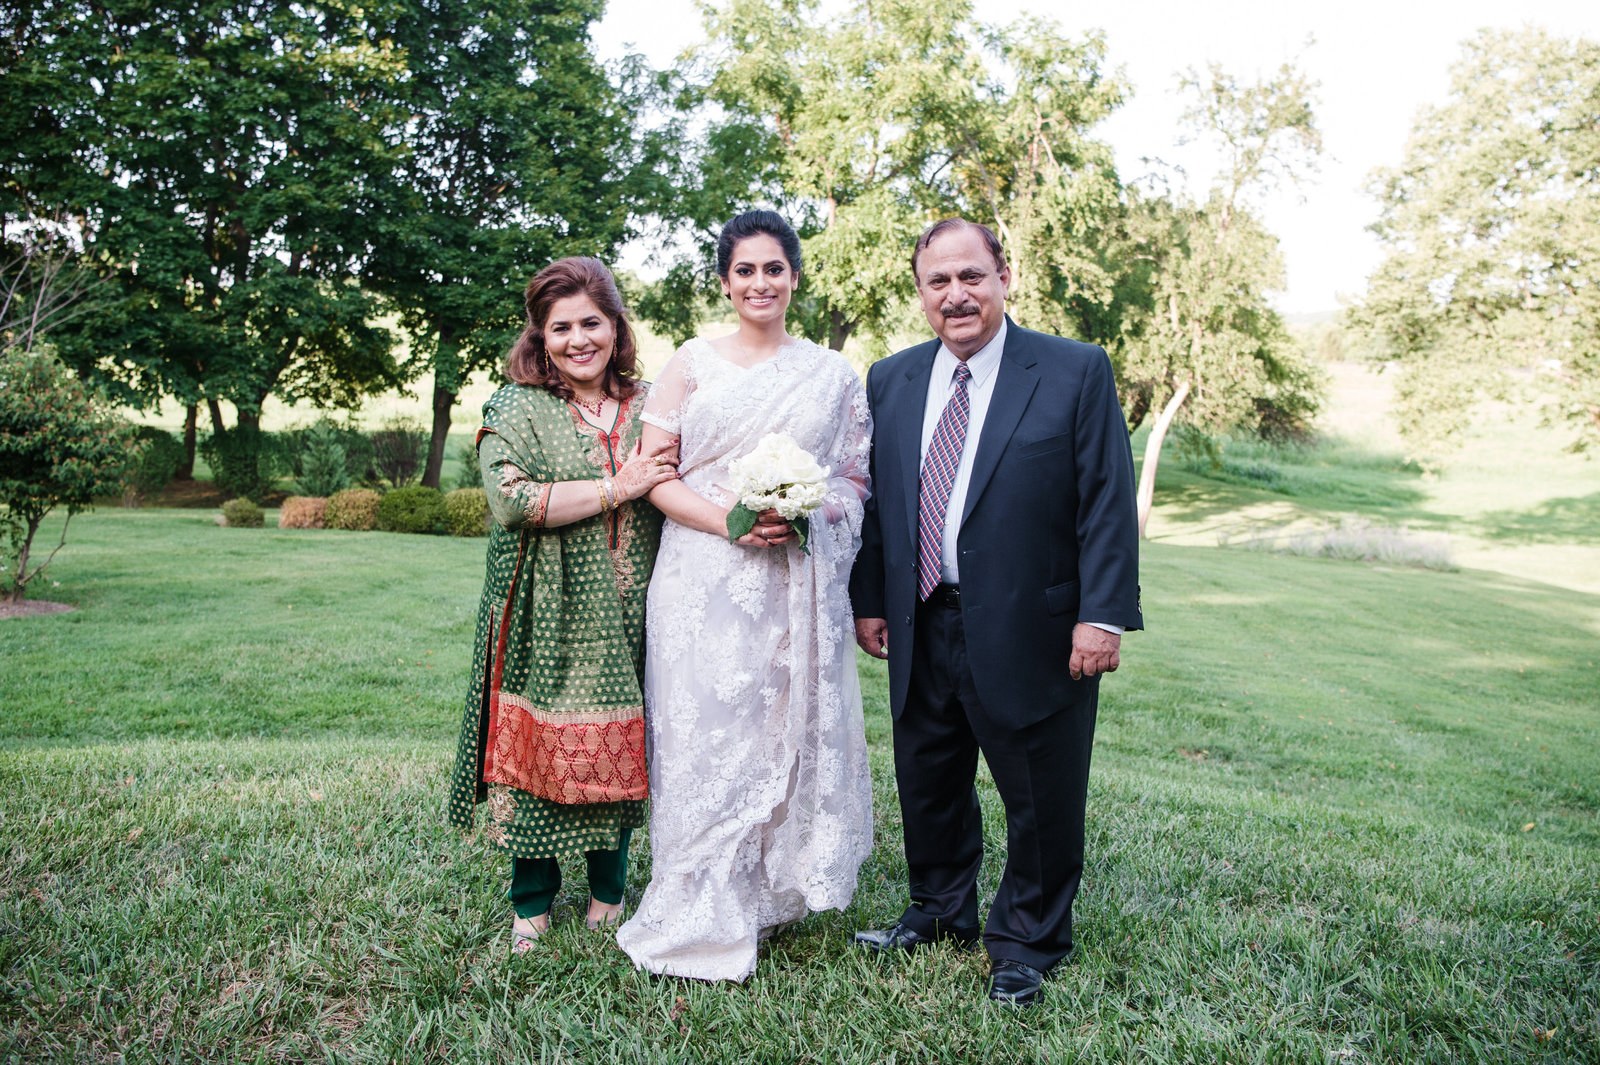 Minhas-Sohail Wedding by The Hill Studios-181